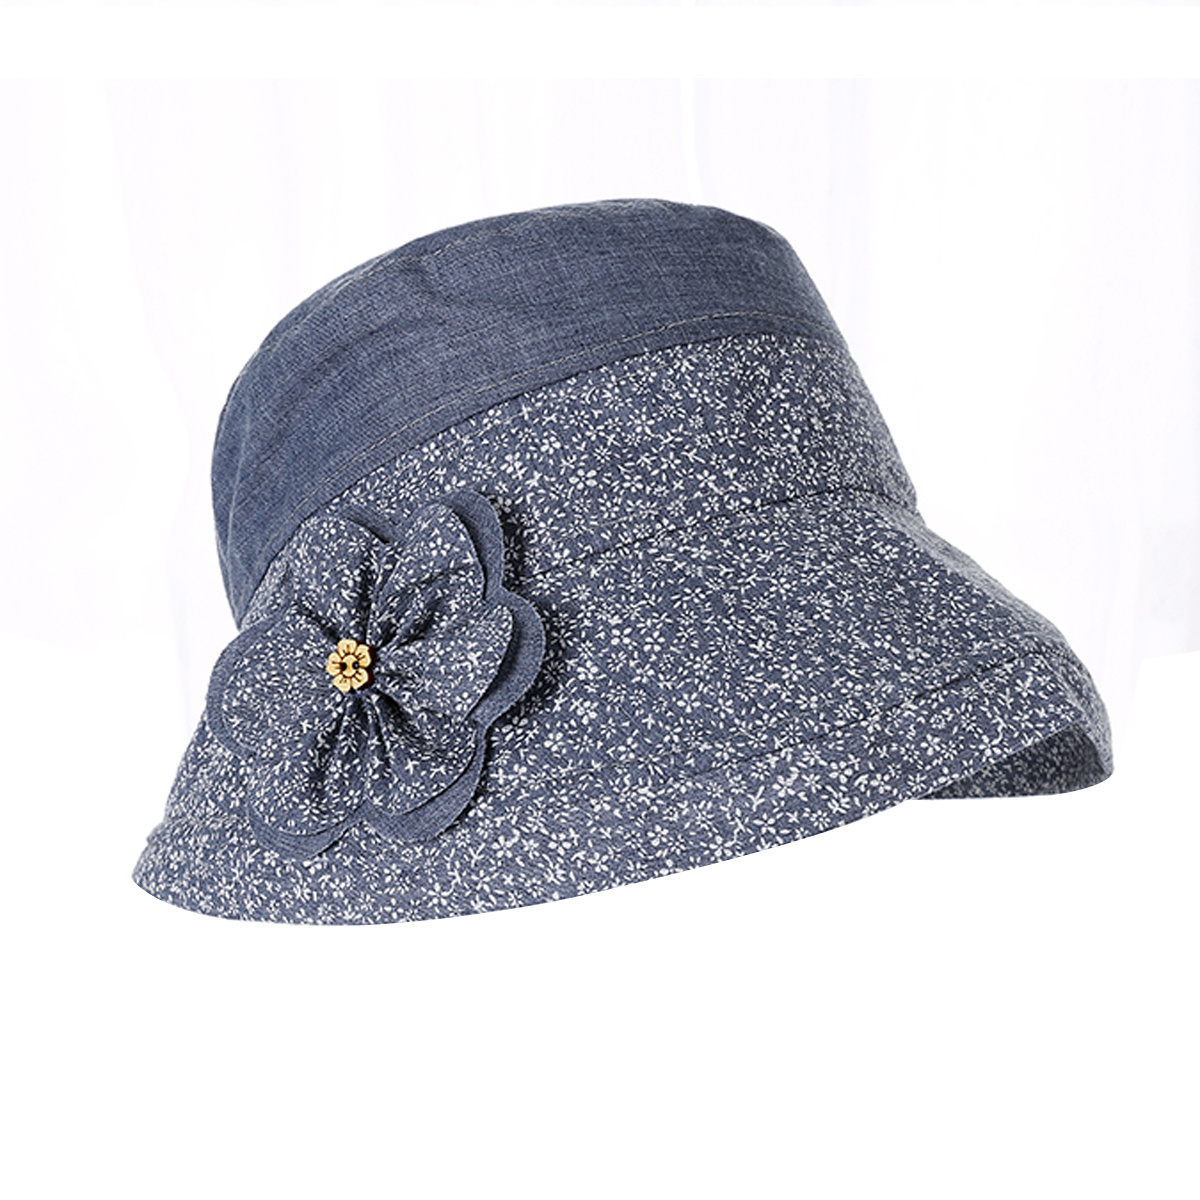 Womens floral flower bucket hat cotton fishing camping for Womens fishing hat